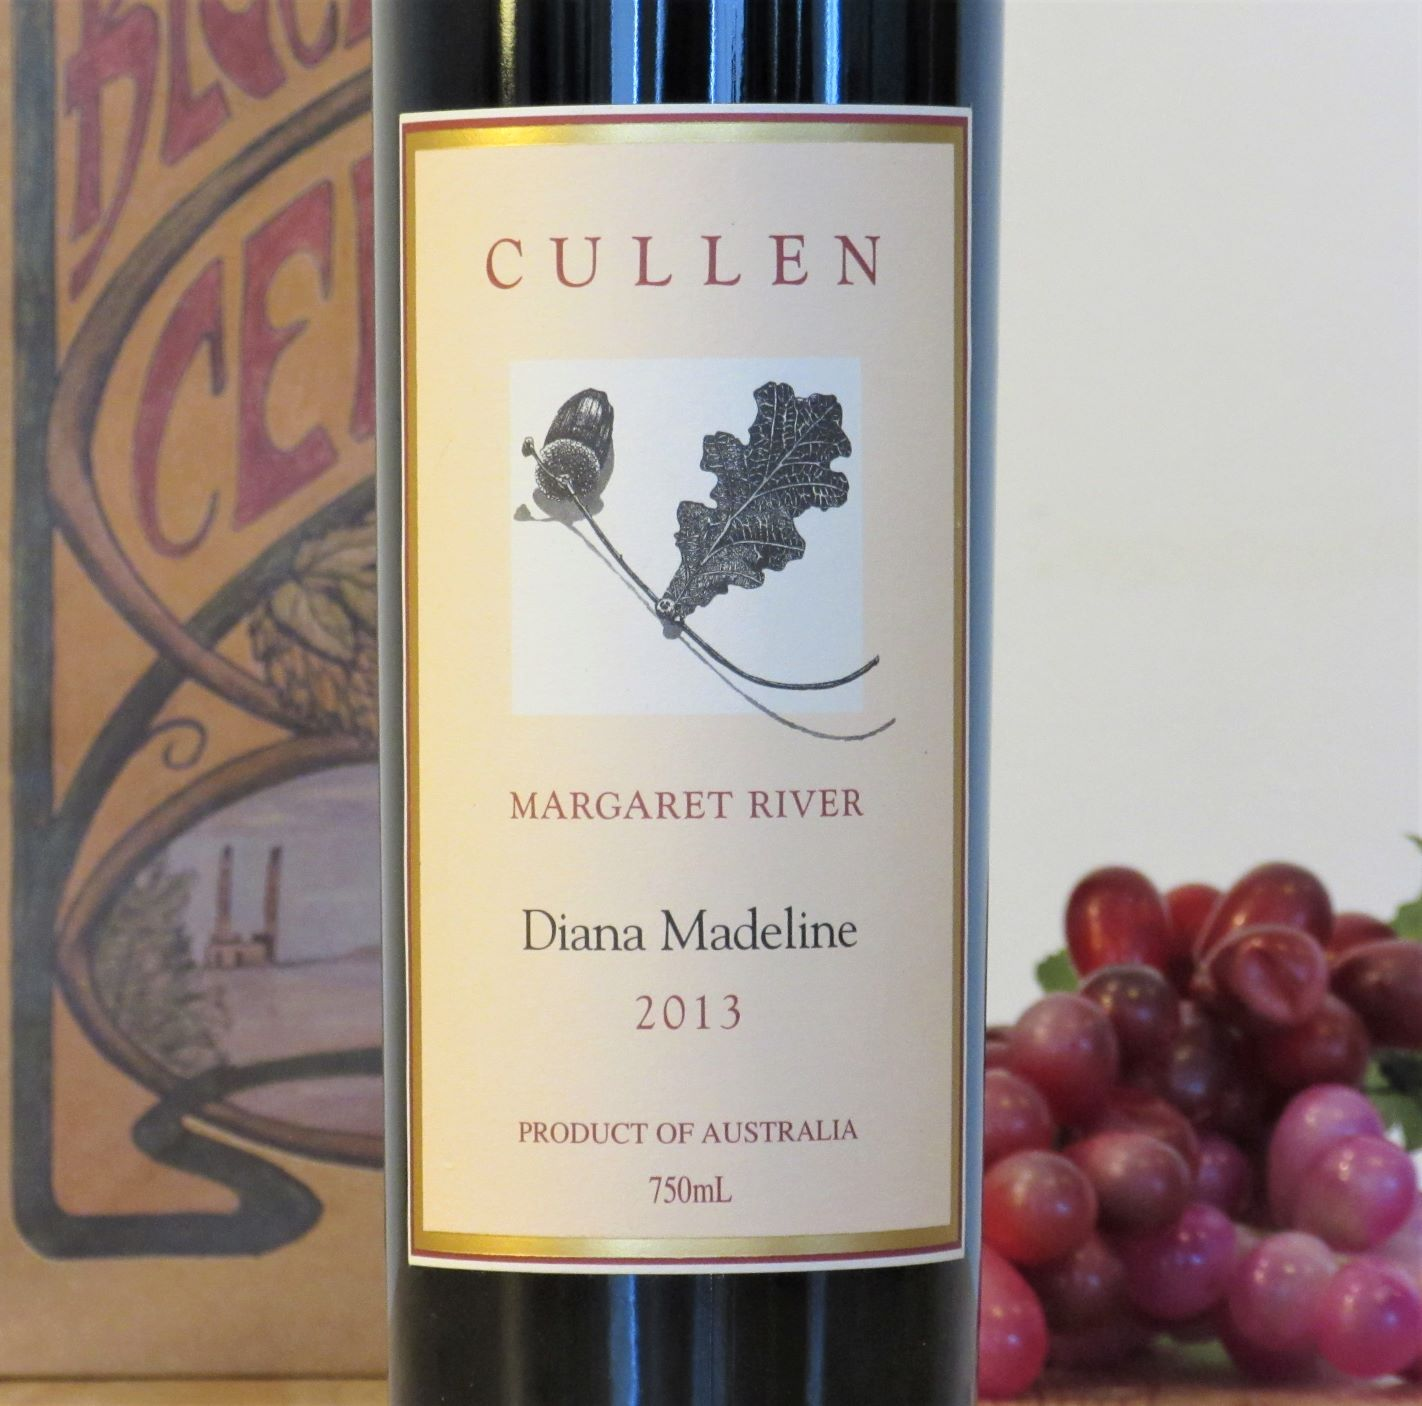 Cullen Diana Madeline 2013